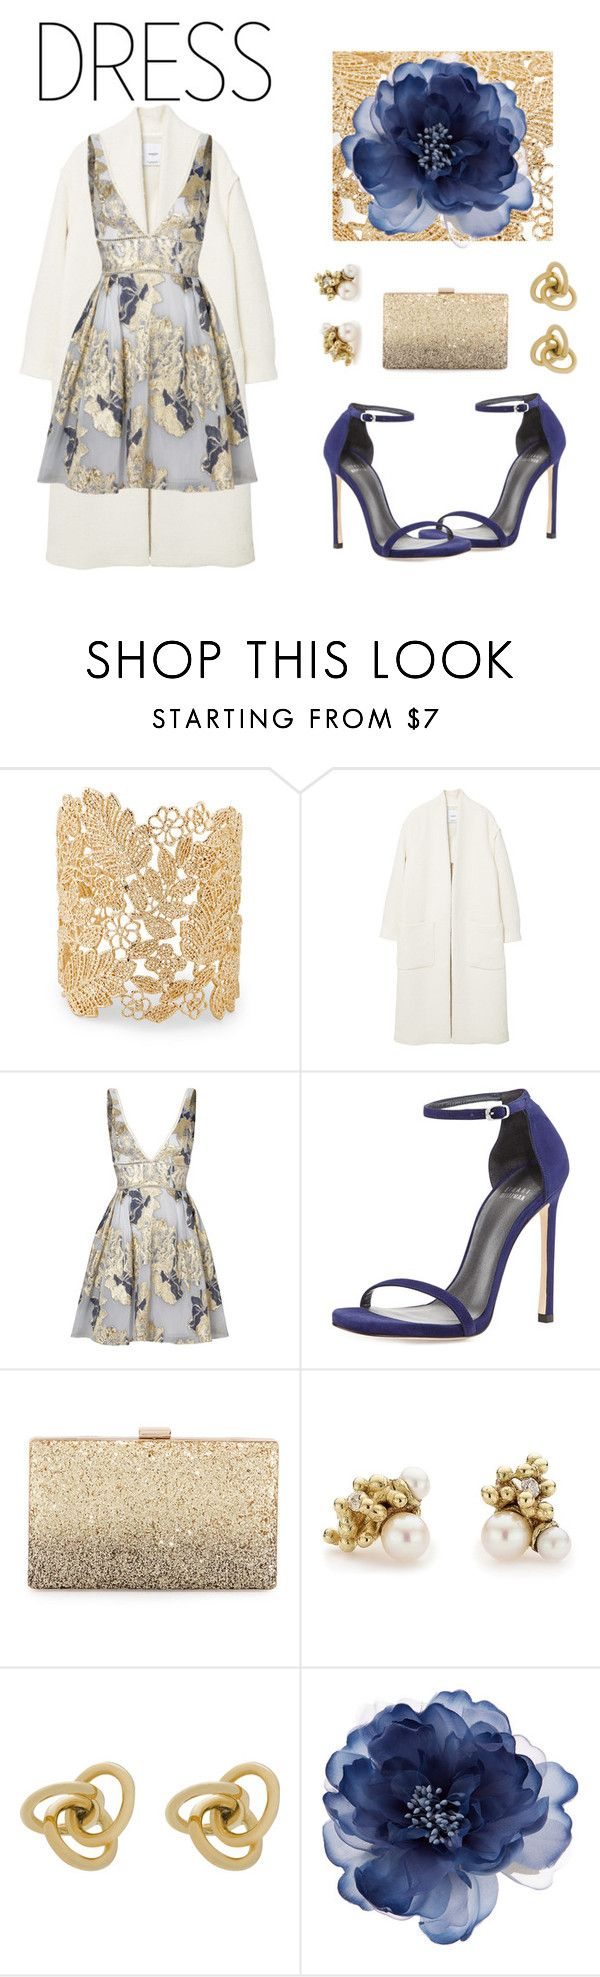 """""""NYE"""" by rleeannee ❤ liked on Polyvore featuring Sole Society, MANGO, Notte by Marchesa, Stuart Weitzman, Neiman Marcus, Ruth Tomlinson, Oroton and Accessorize"""